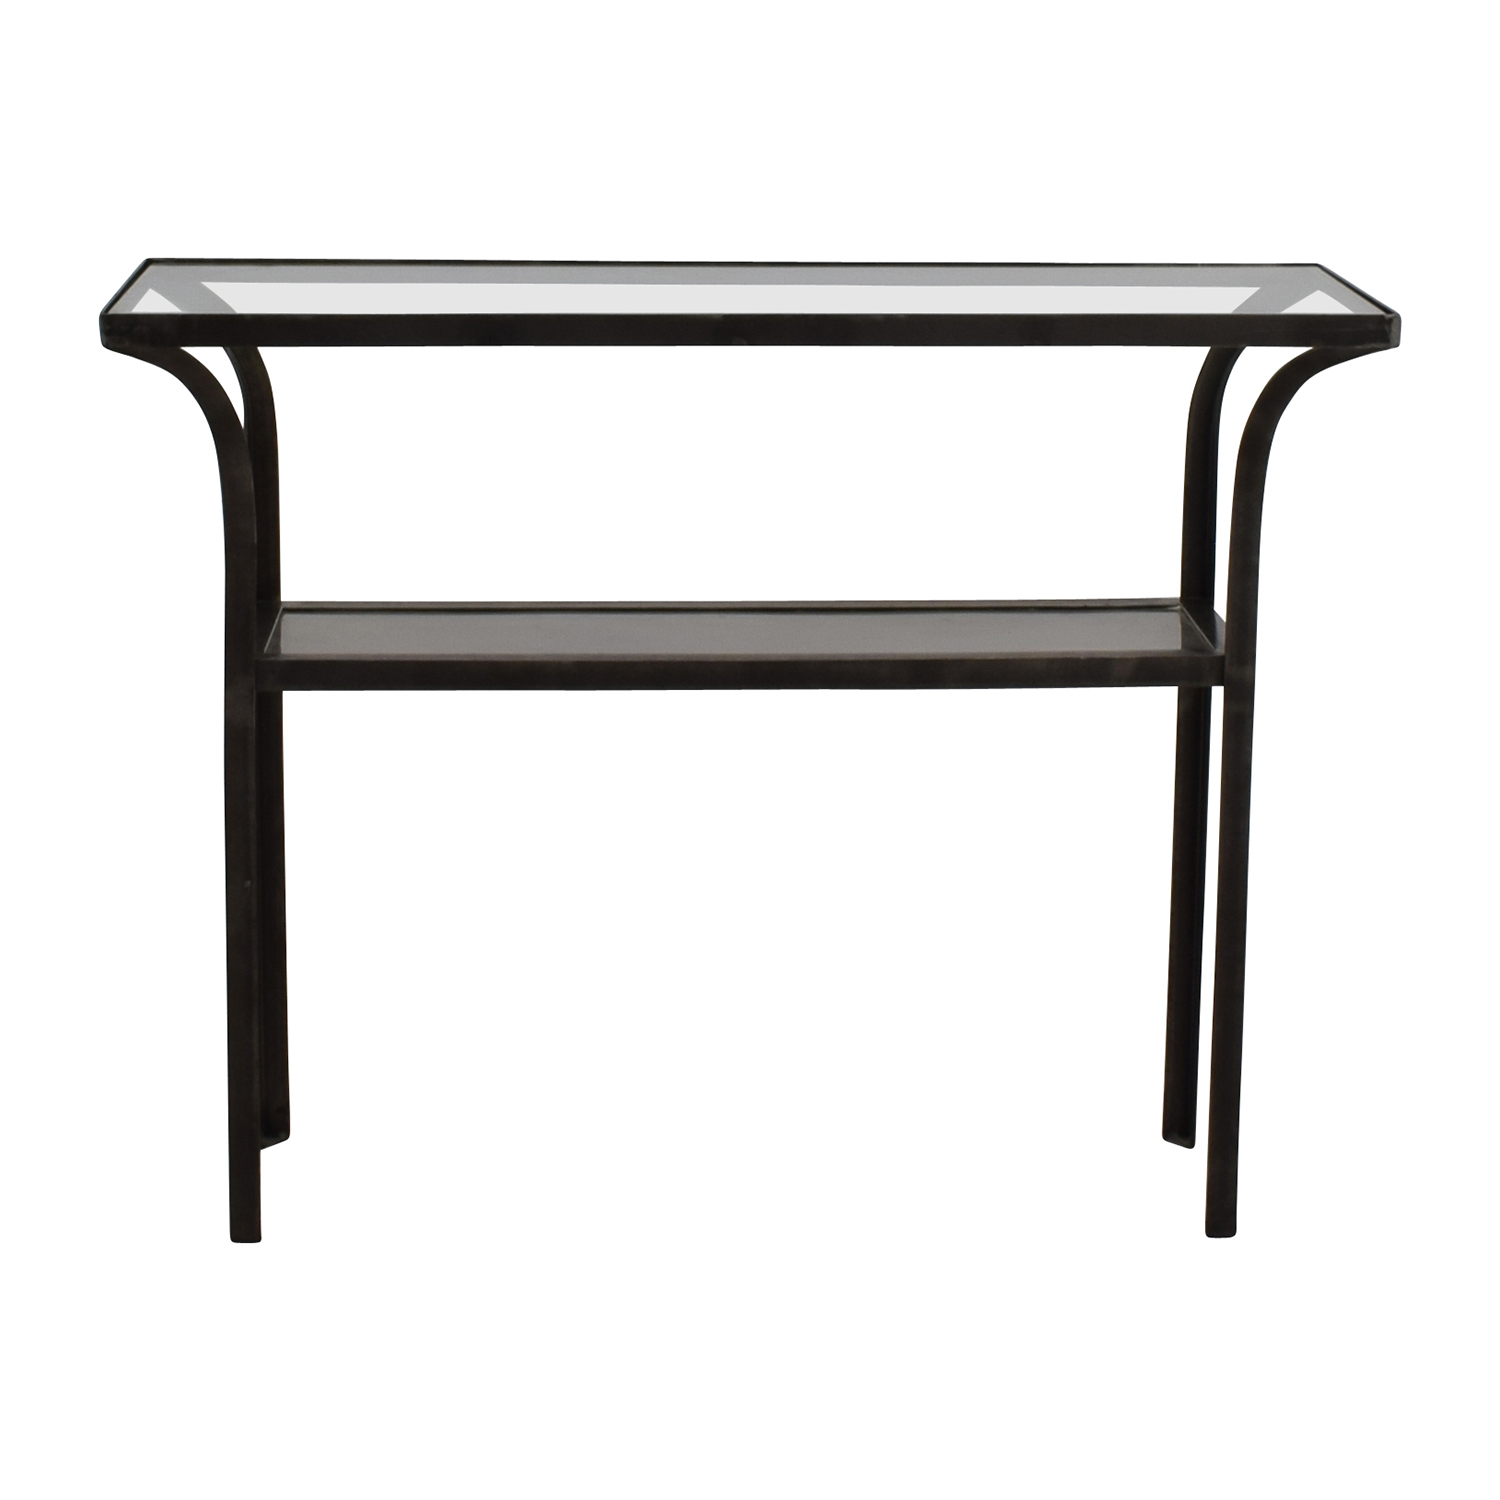 buy Crate & Barrel Black Glass Console Table Crate and Barrel Tables